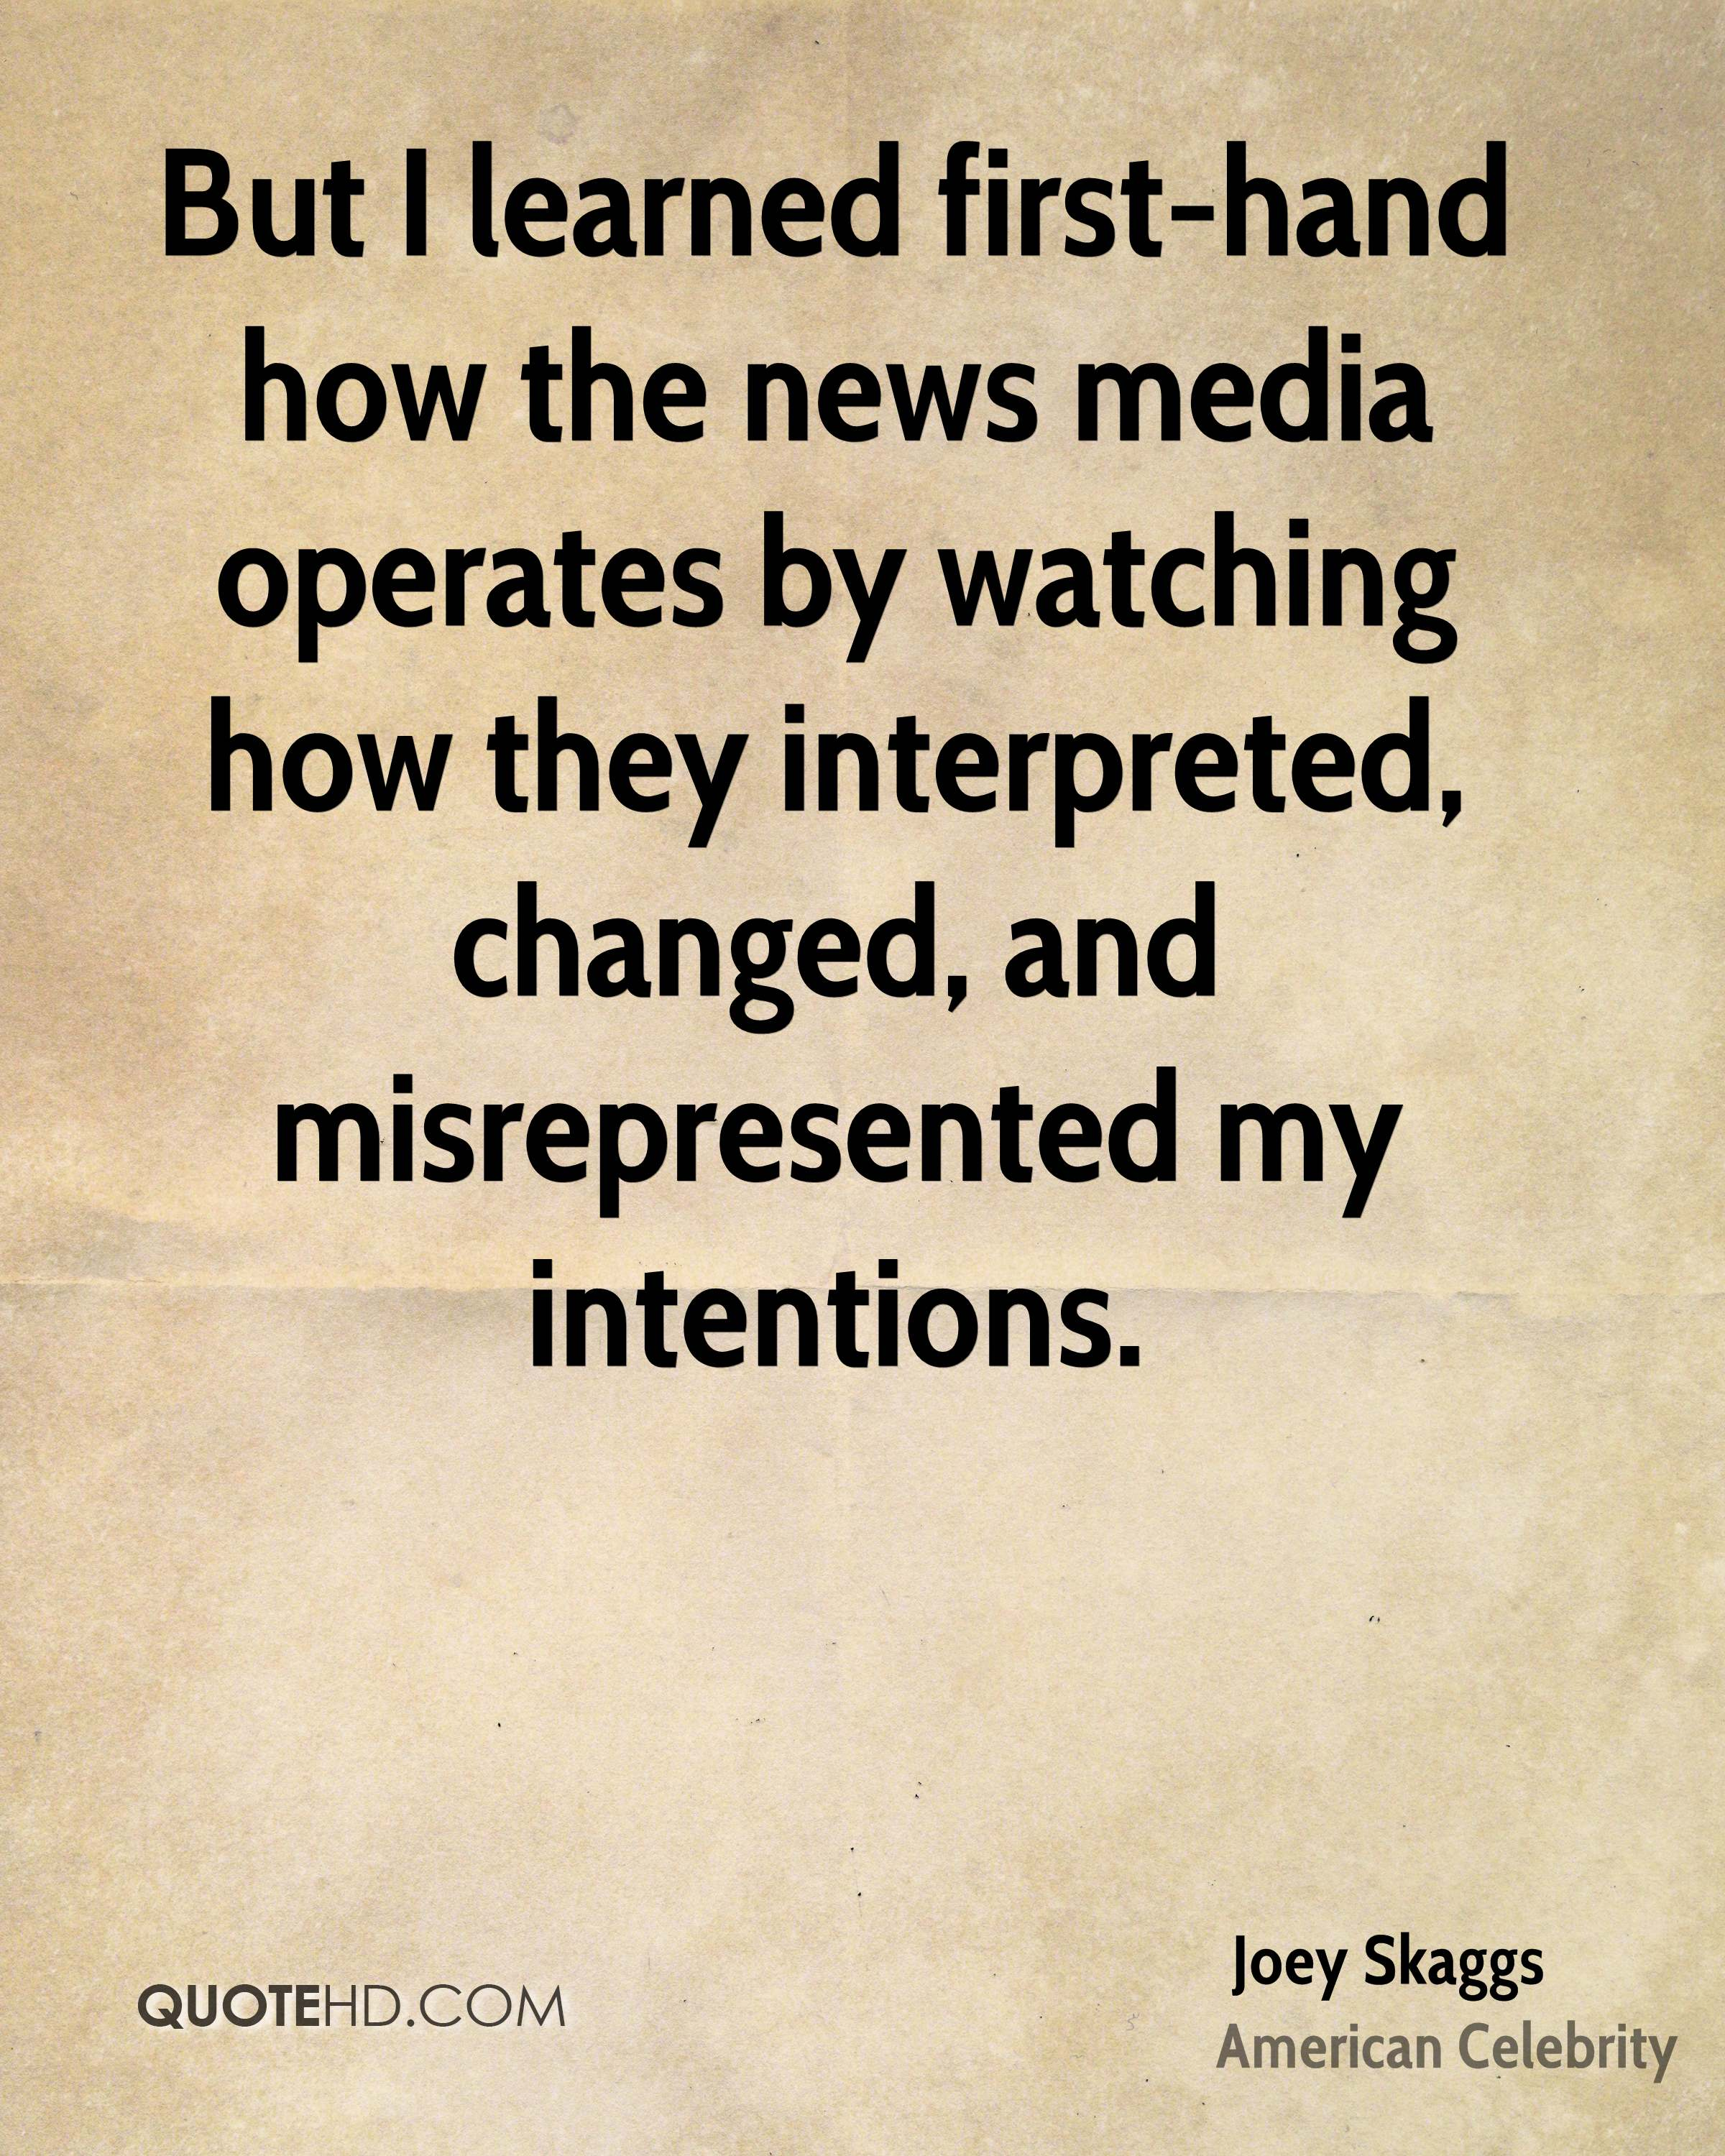 But I learned first-hand how the news media operates by watching how they interpreted, changed, and misrepresented my intentions.